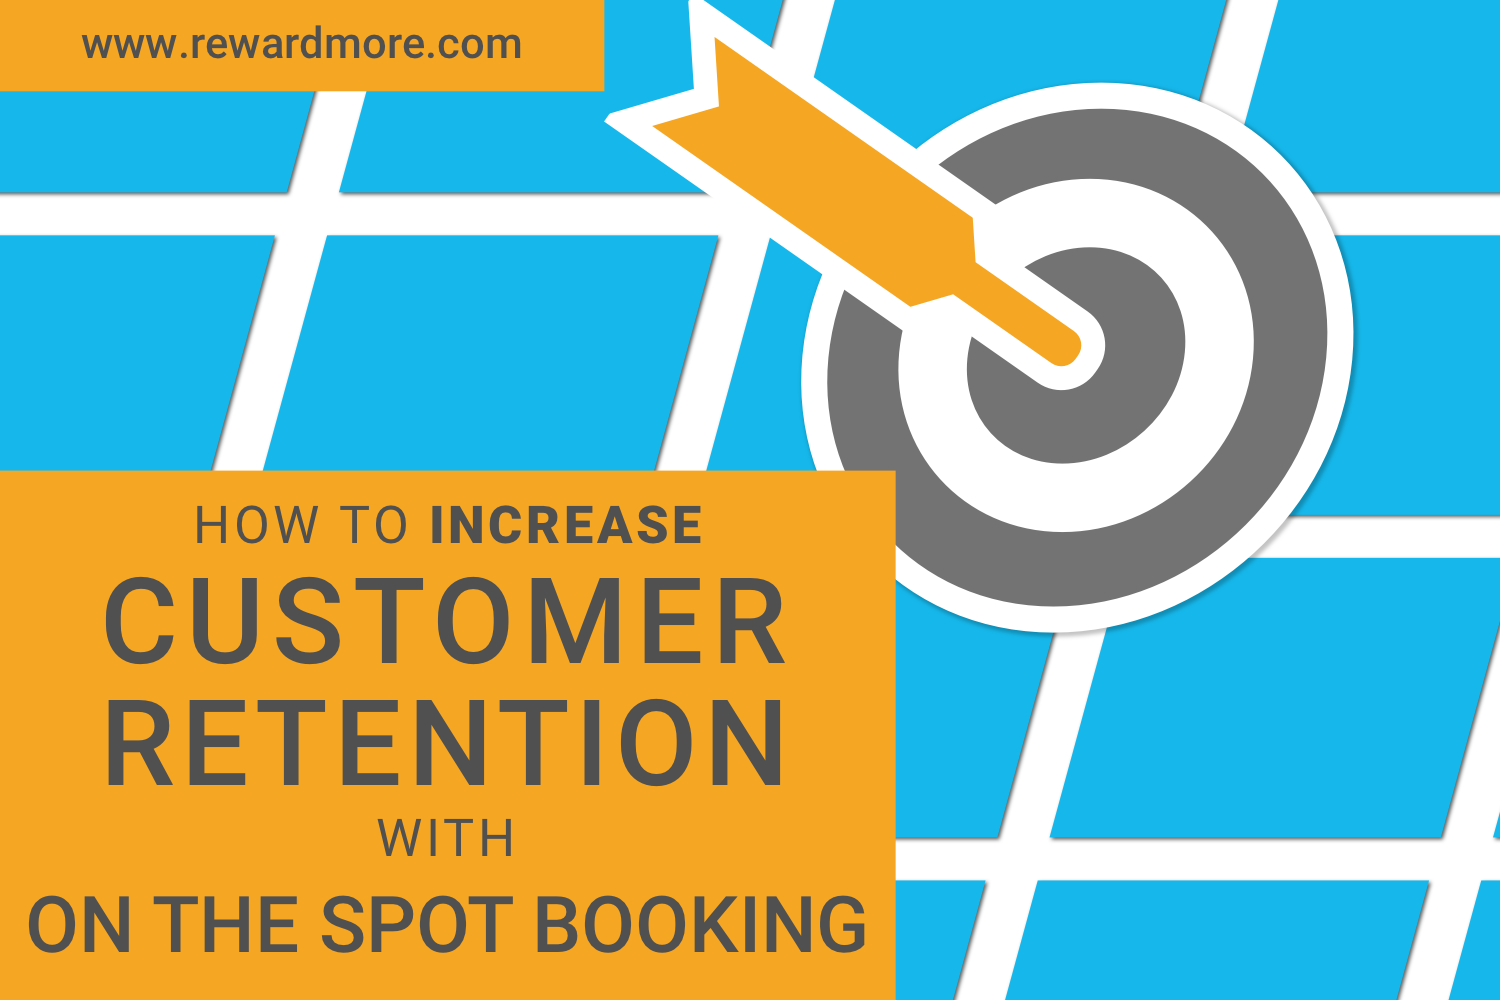 How to Increase Customer Retention with On-the-Spot Bookings